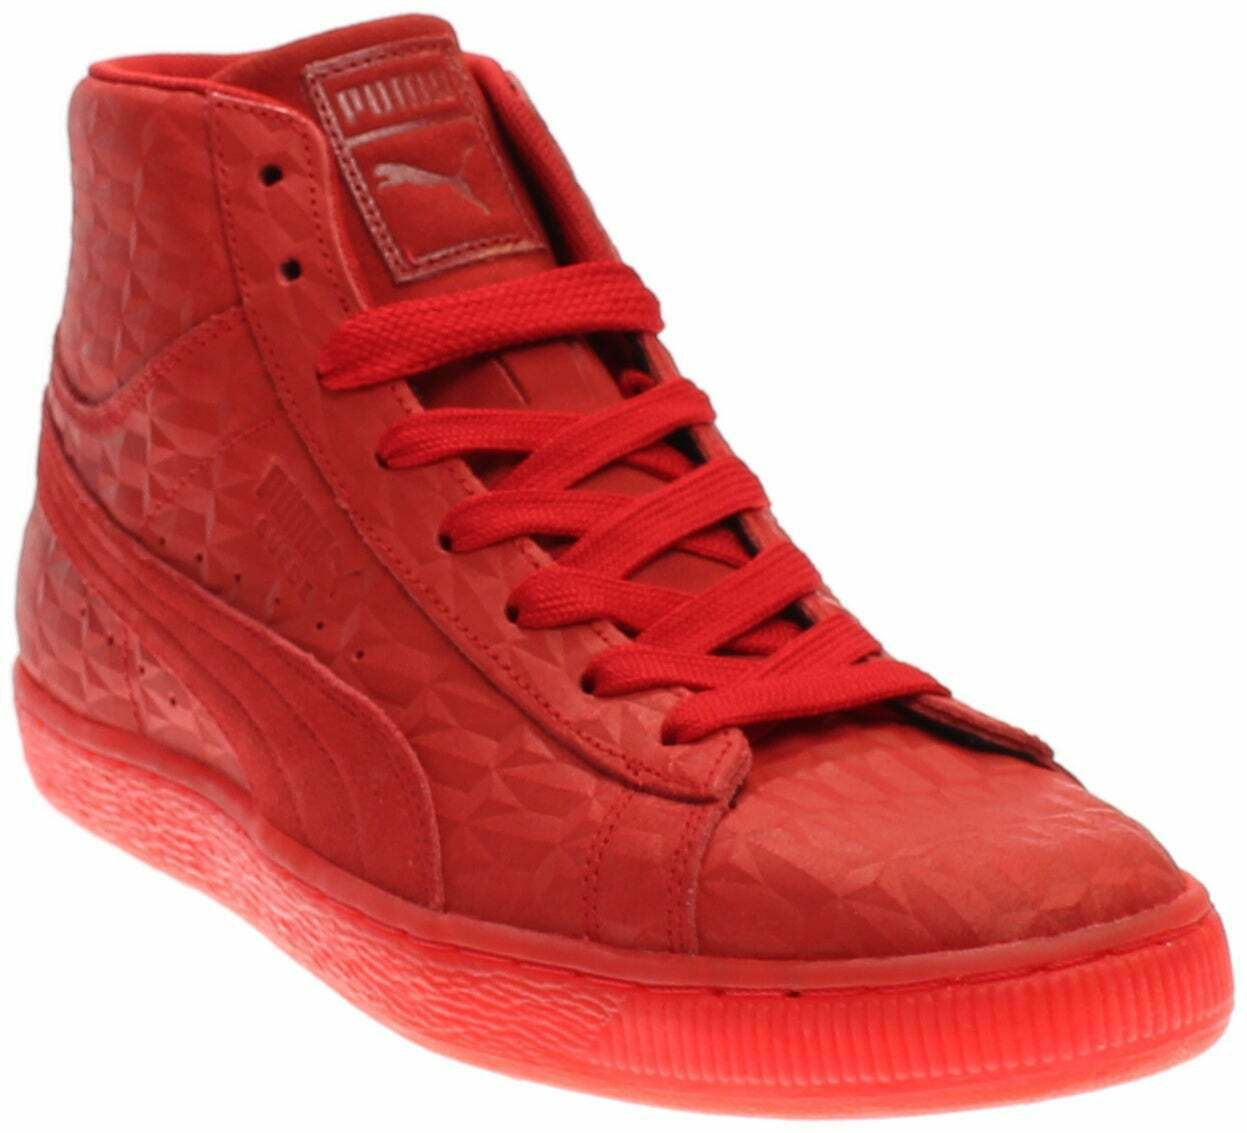 Puma Mens Suede Mid Me Iced Shoes